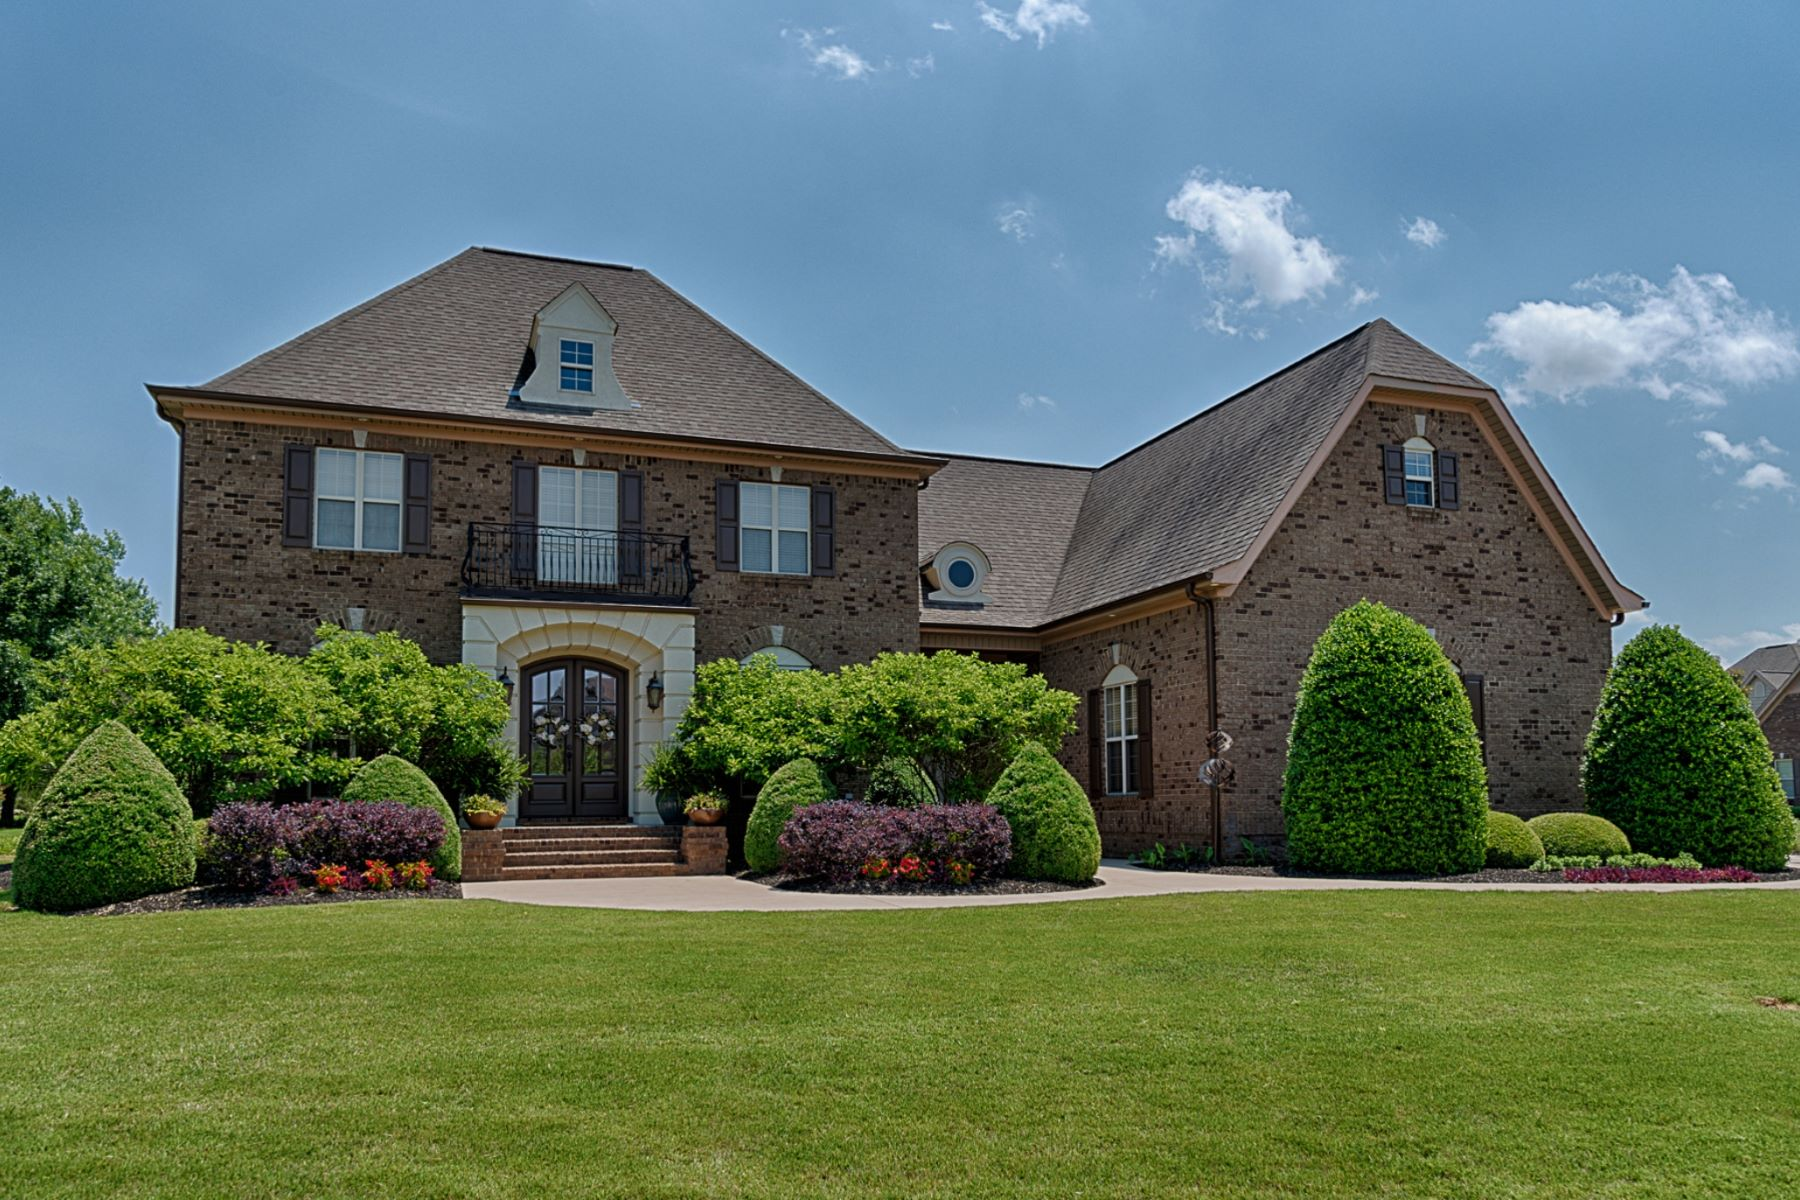 Single Family Homes for Active at 12533 Elmhurst Drive Athens, Alabama 35613 United States